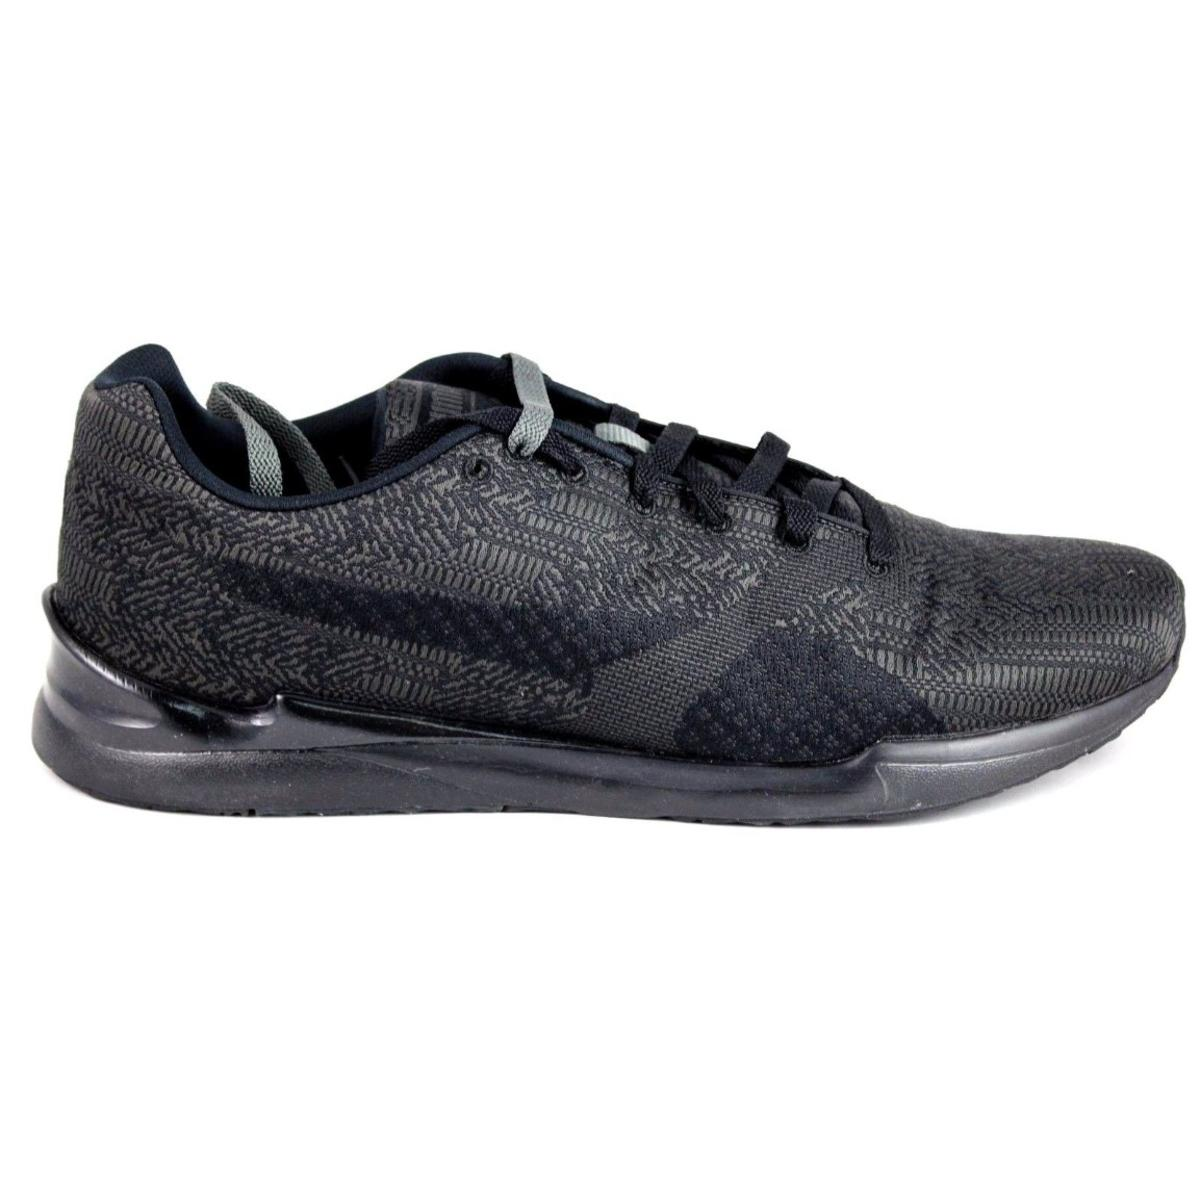 96c199776835 Puma Men s XS 500 Woven Dark Shadow Black Sneaker 13M 888536298142 ...